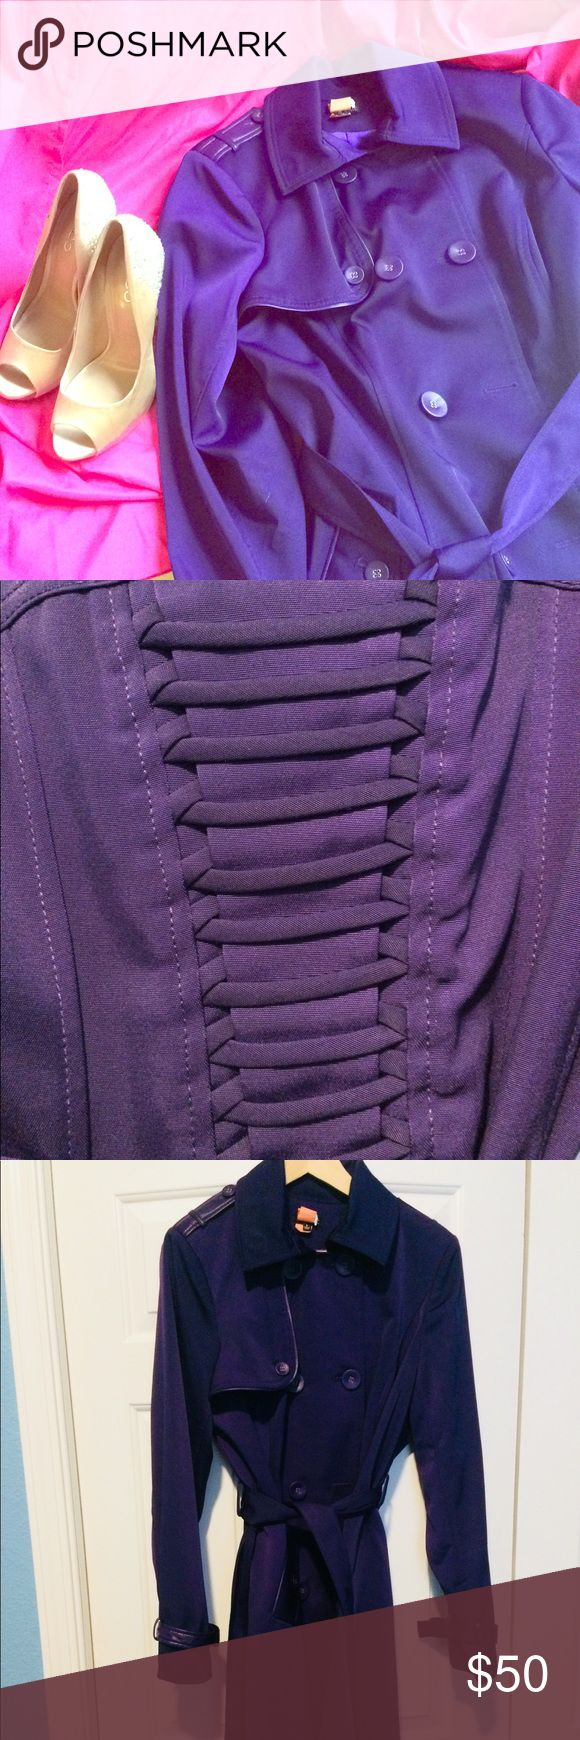 """Plus Size Purple Trench Coat/Jacket NWOT Valentines Day is coming up why not let this be the trench coat you meet up with your boo in with that perfect piece of lingerie!   Such a cute purple jacket all you need is a red or lime green tote to pair this with. And the interwoven back is everything!  City Chic size says small and according to the site that's a size """"16""""  *No trades  Fabric  Main: 80% Polyester  17 % Cotton 3% Elastane  Contrast  100% Polyurethane   Lining: 98% Polyester 2%…"""